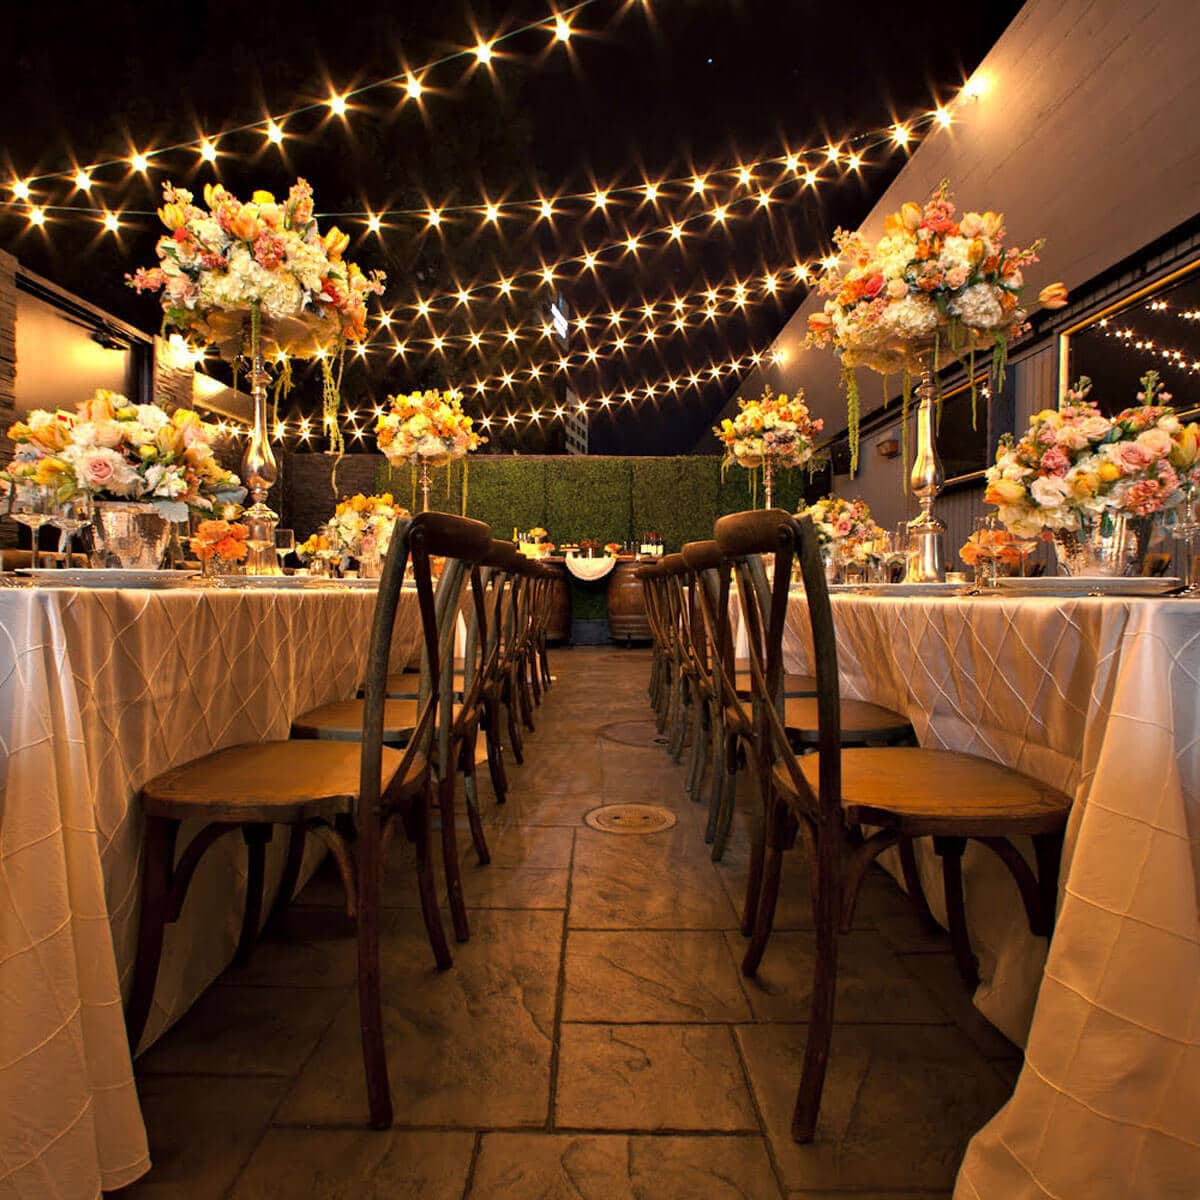 Wedding Chair Rentals Party Chair Rentals Near Me Chair Rentals Marquee Event